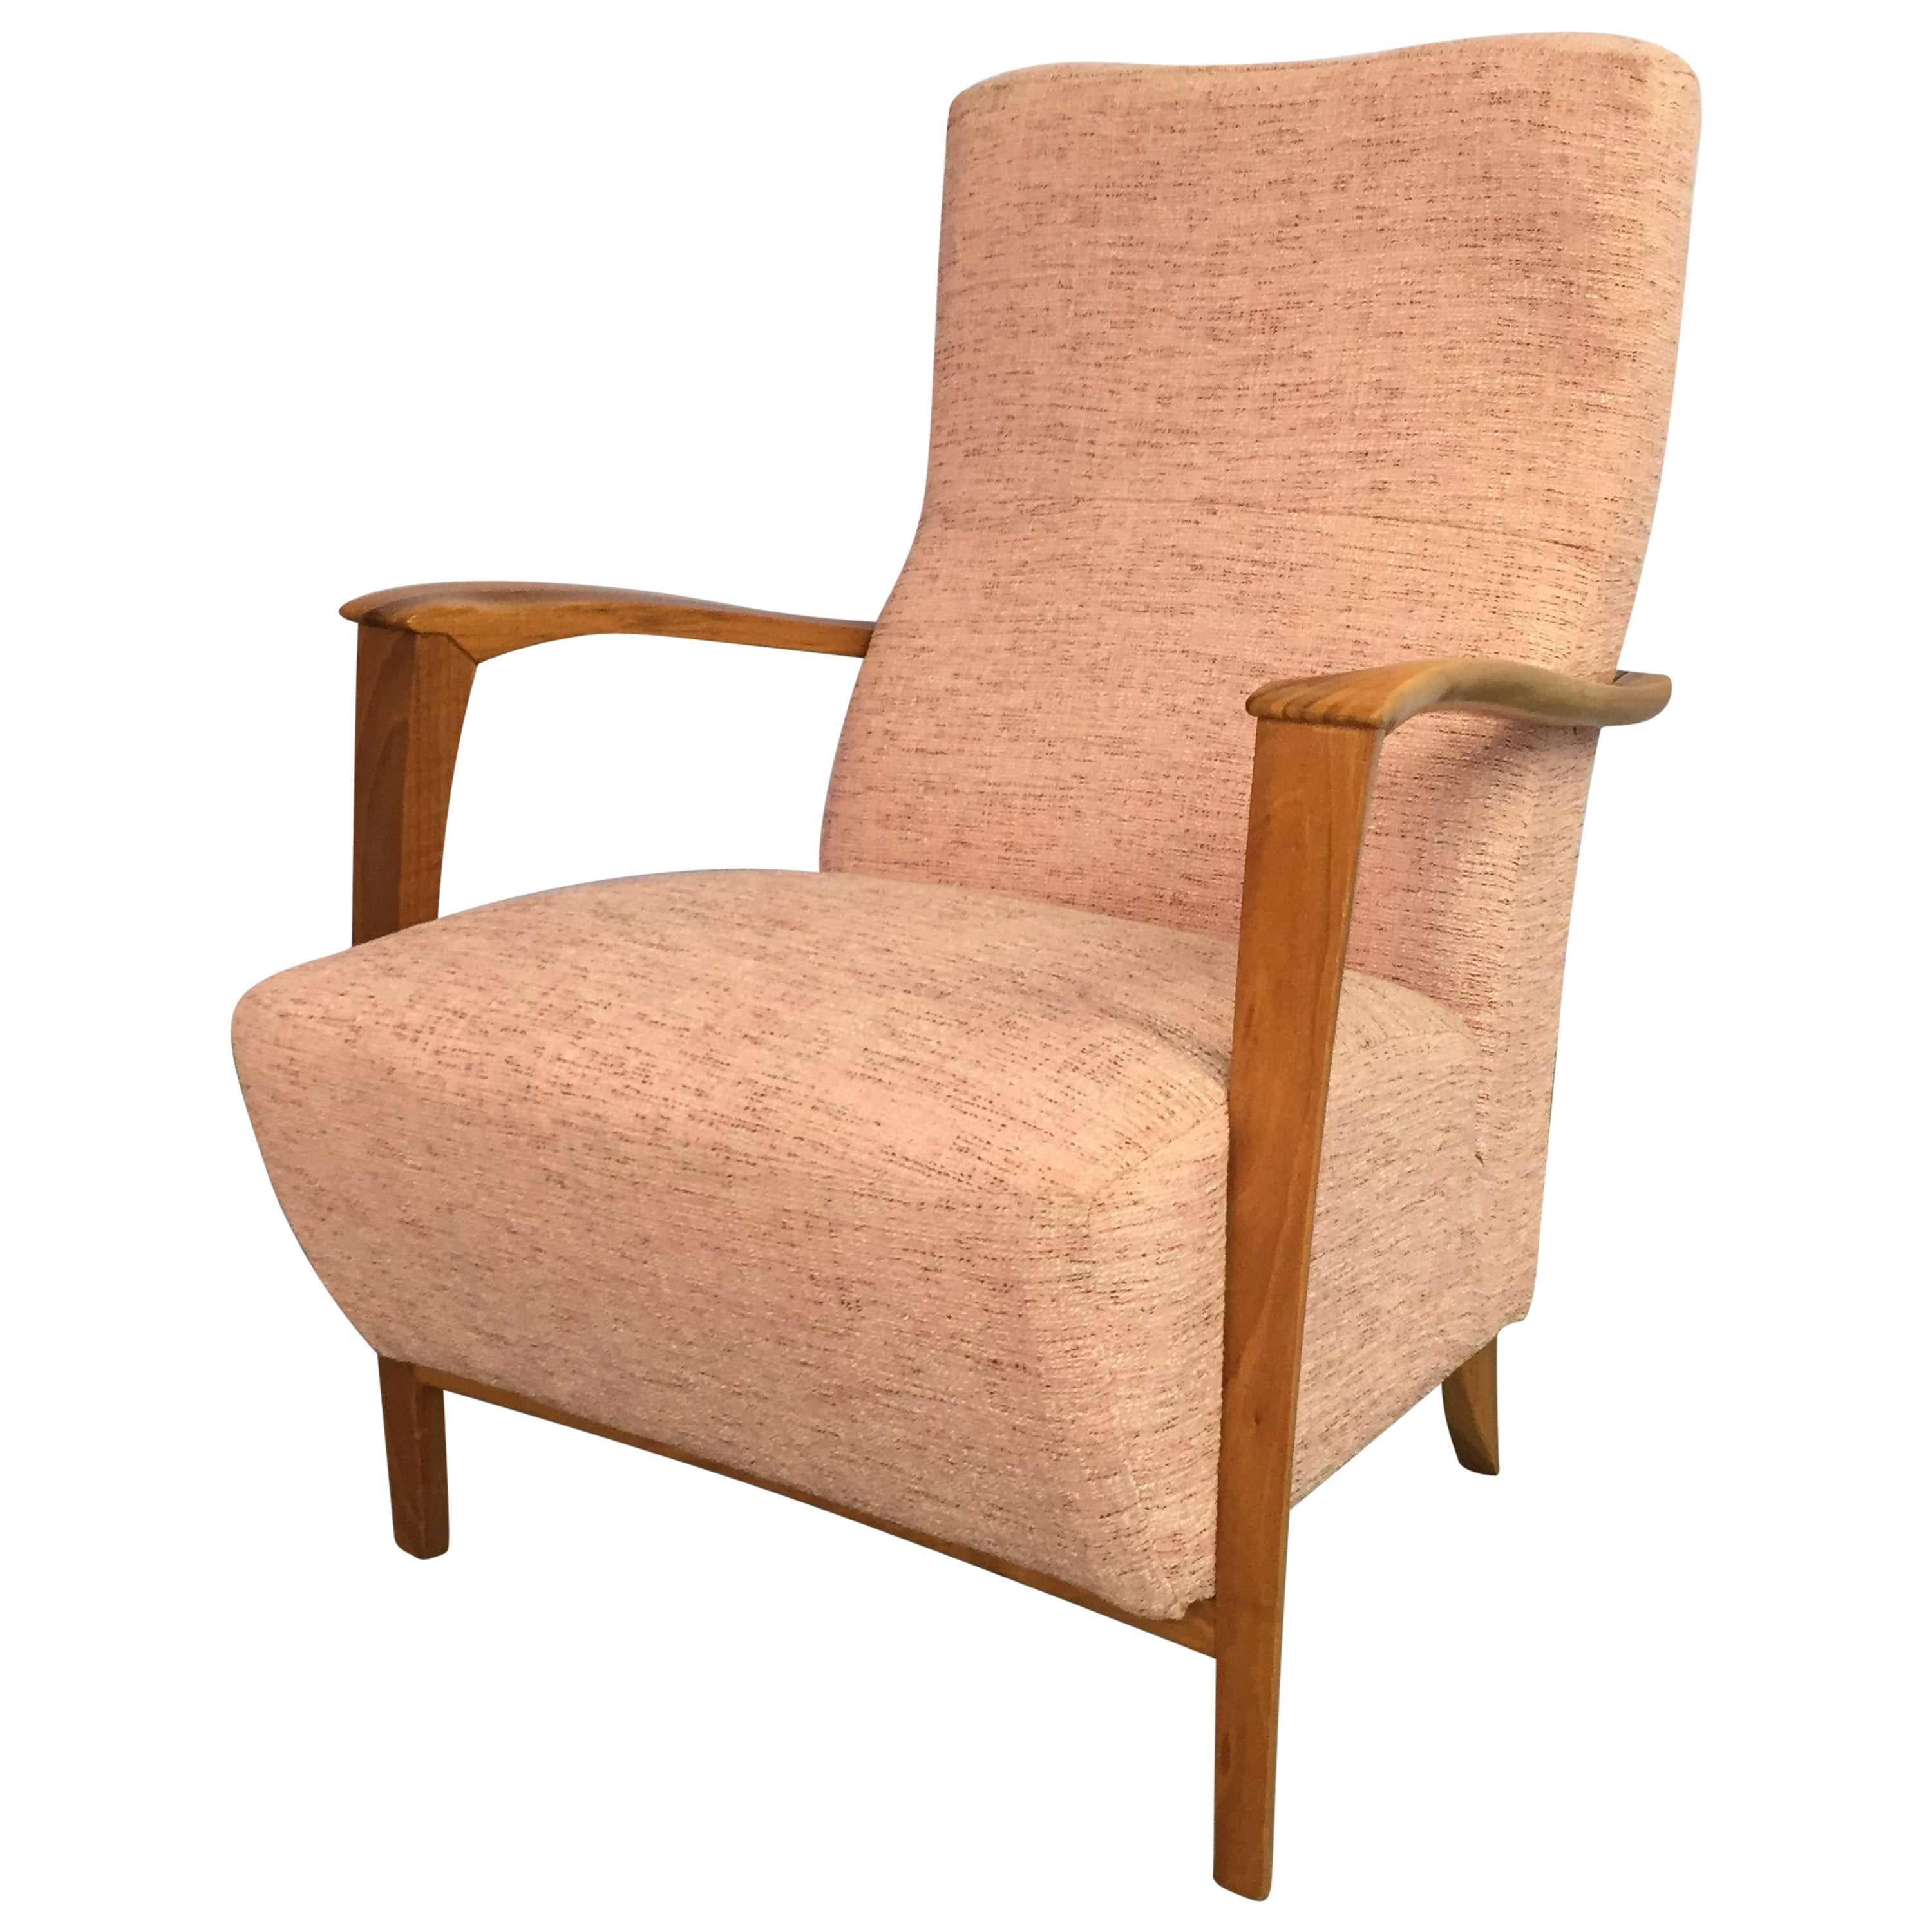 Italian Armchair with Carved Wood Frame and Salmon Upholstery